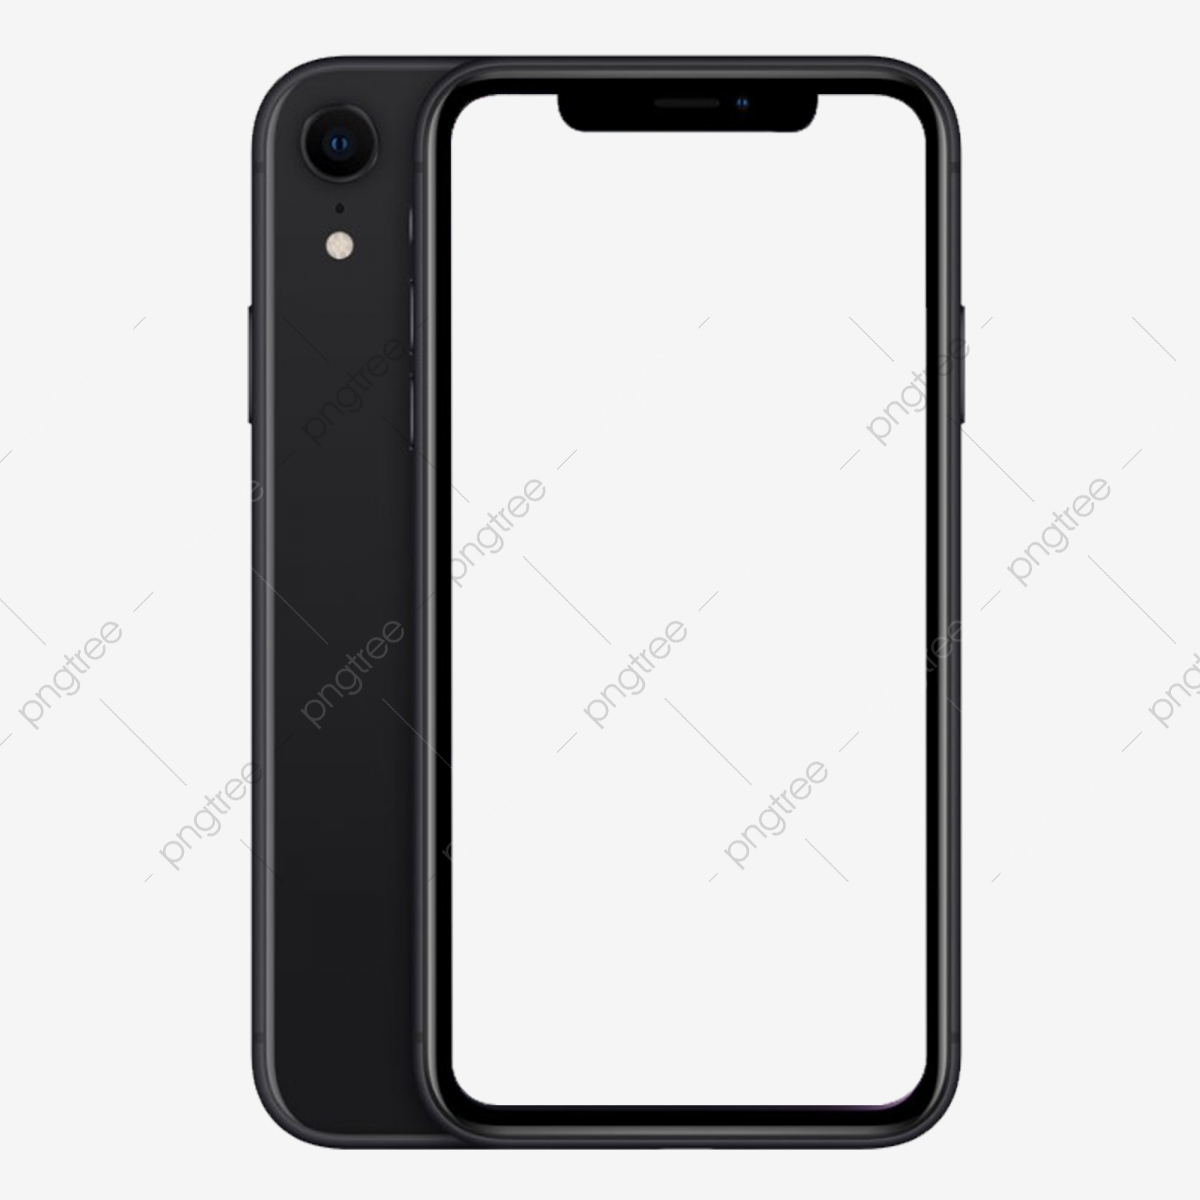 Iphone Xs / Xs Max Jet Black Mockup, Mobile, Phone, Replenishing PNG.